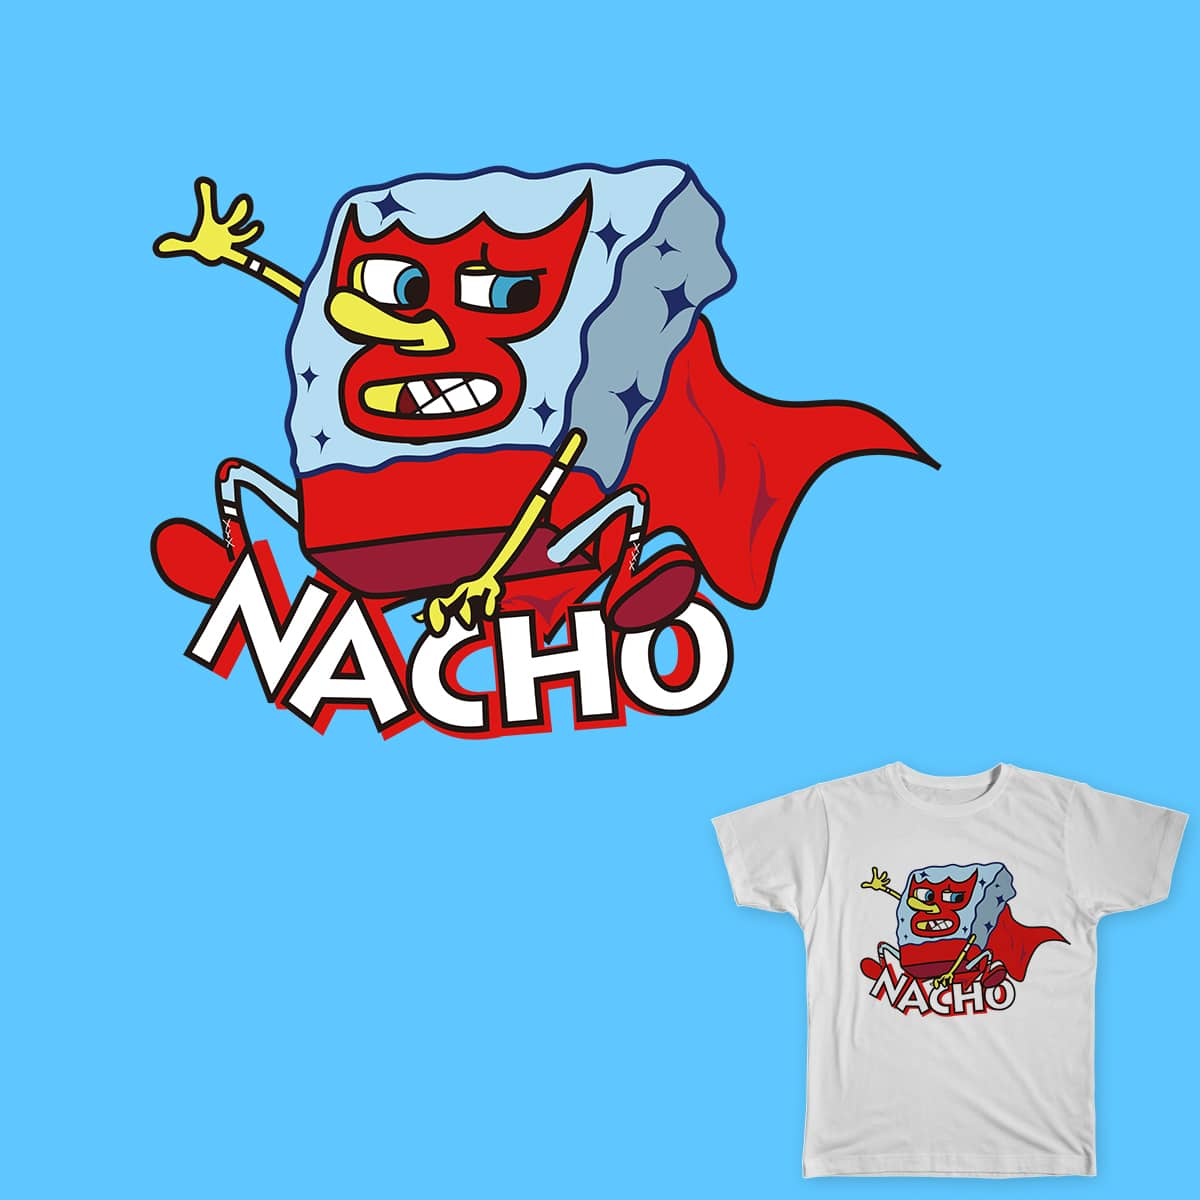 NachoBob by antony.wang on Threadless